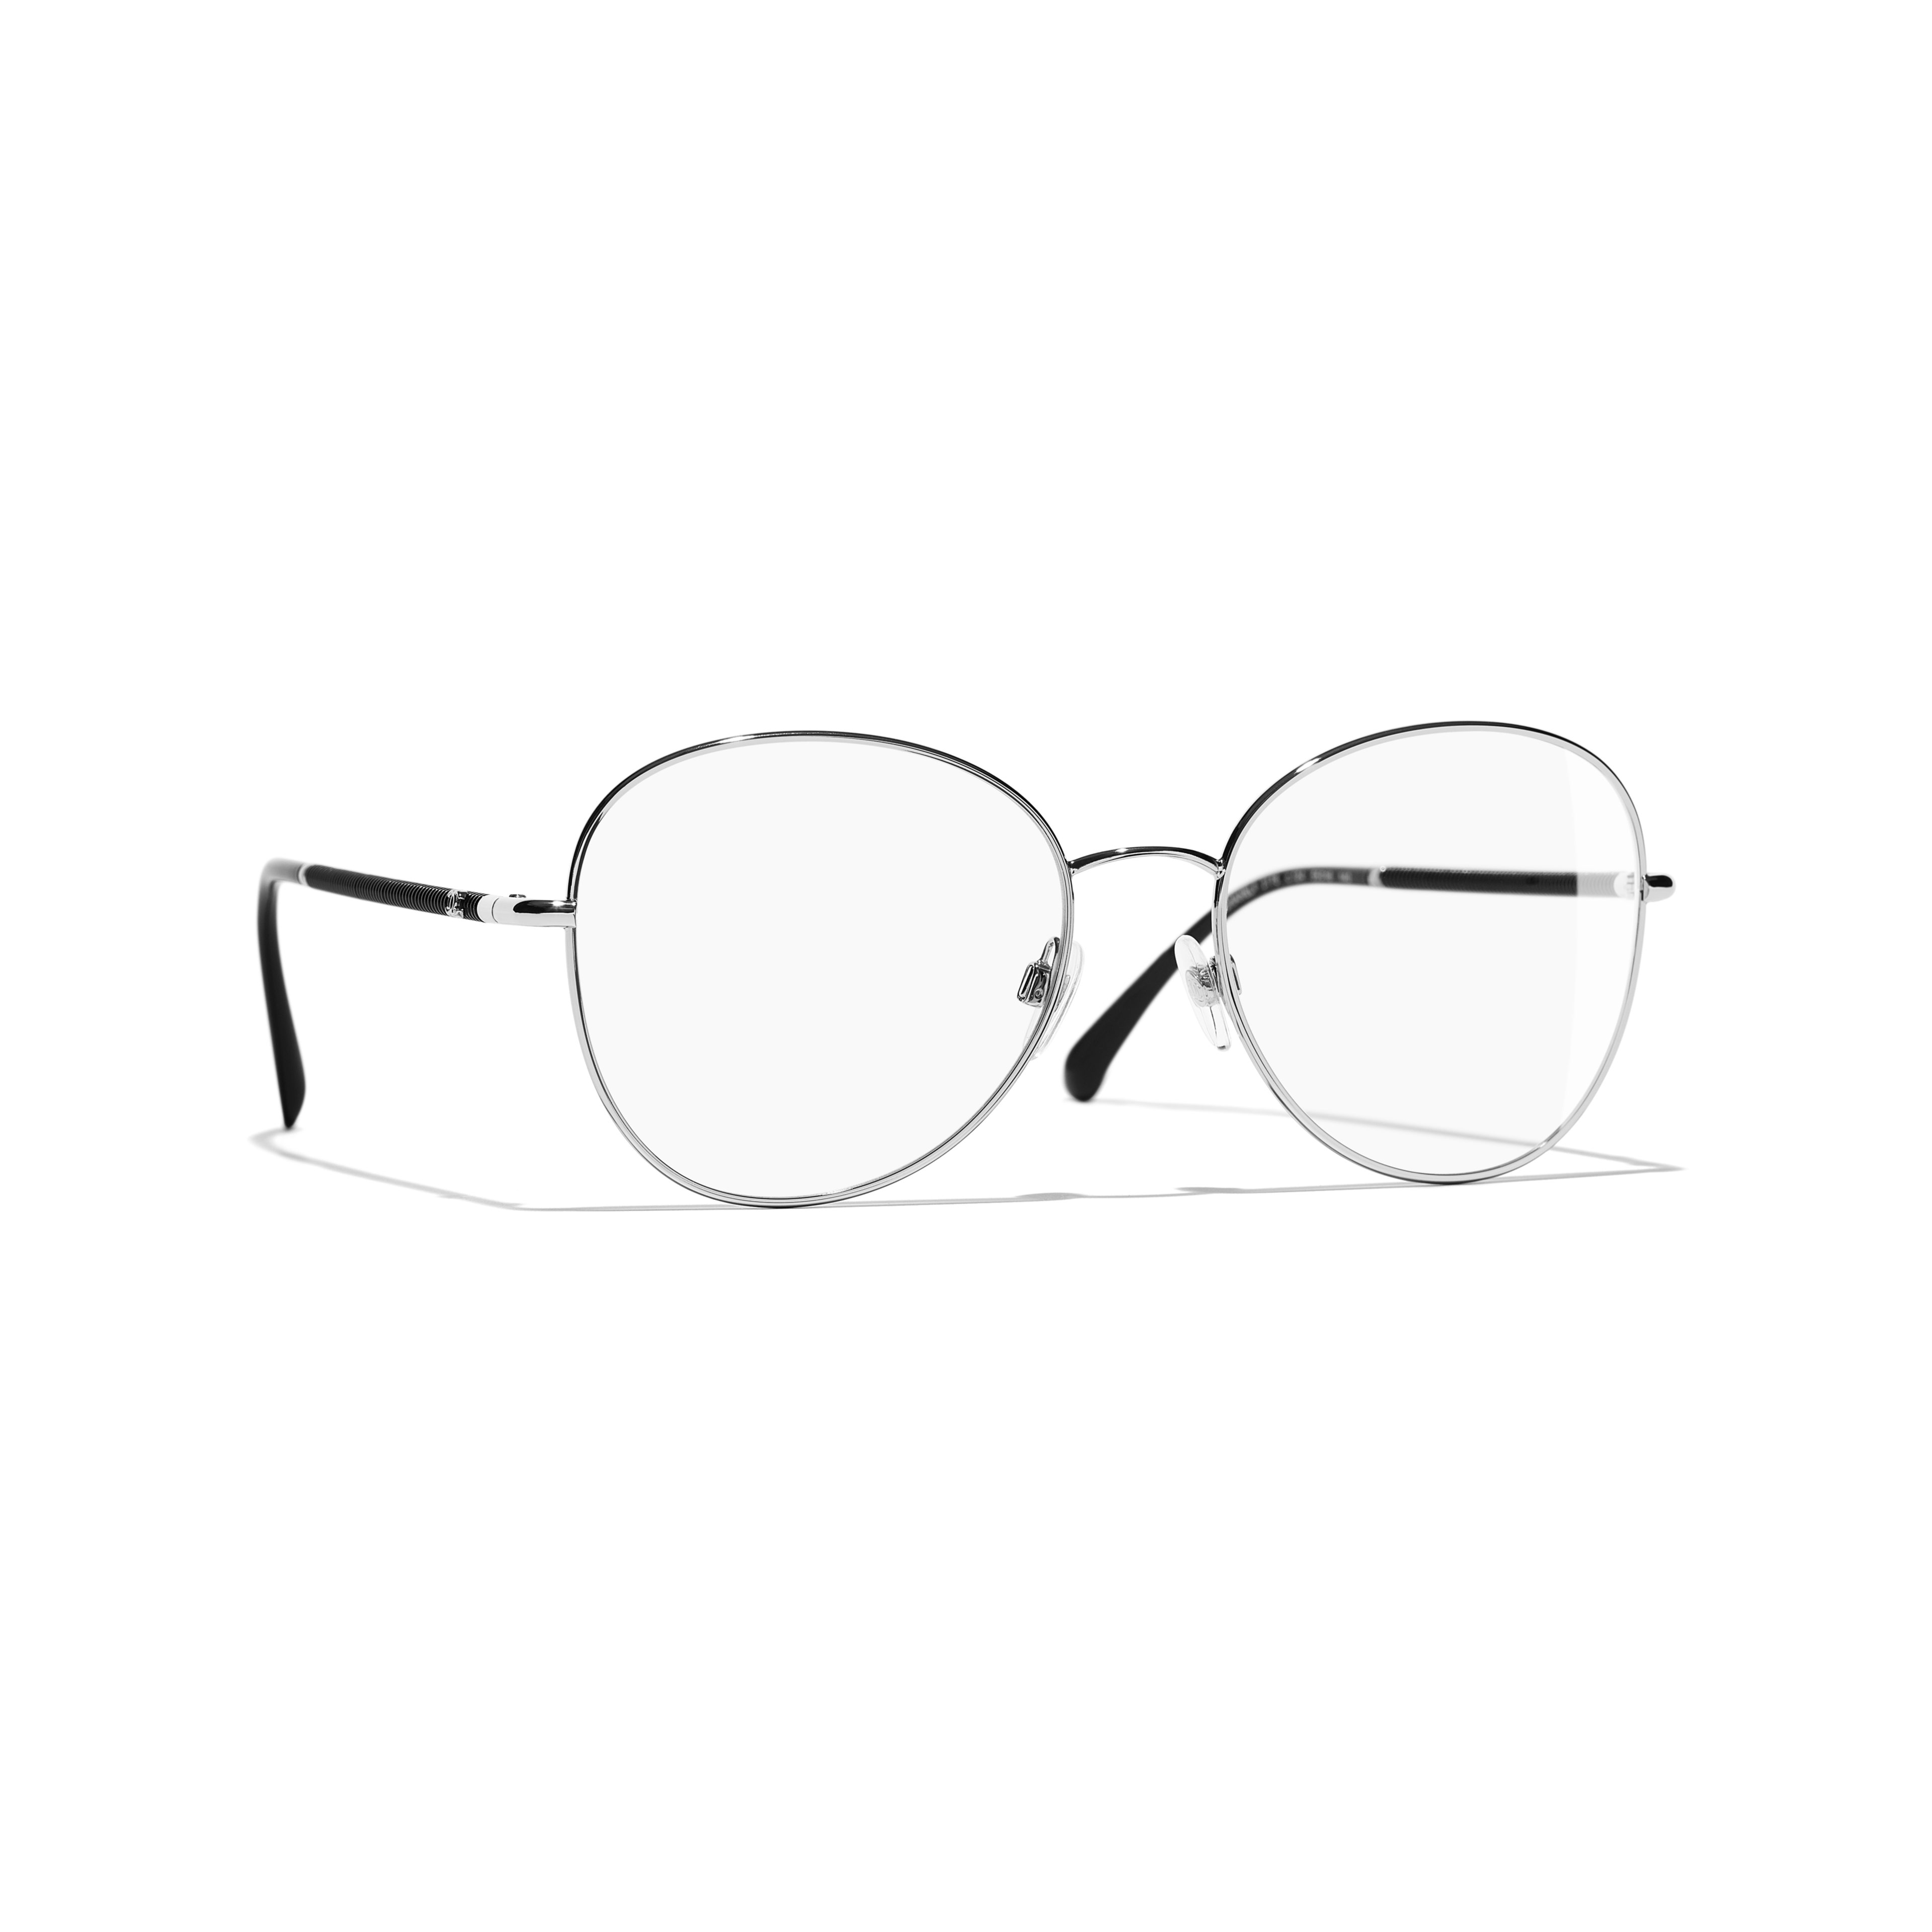 Round Eyeglasses - Silver - Metal - Default view - see full sized version